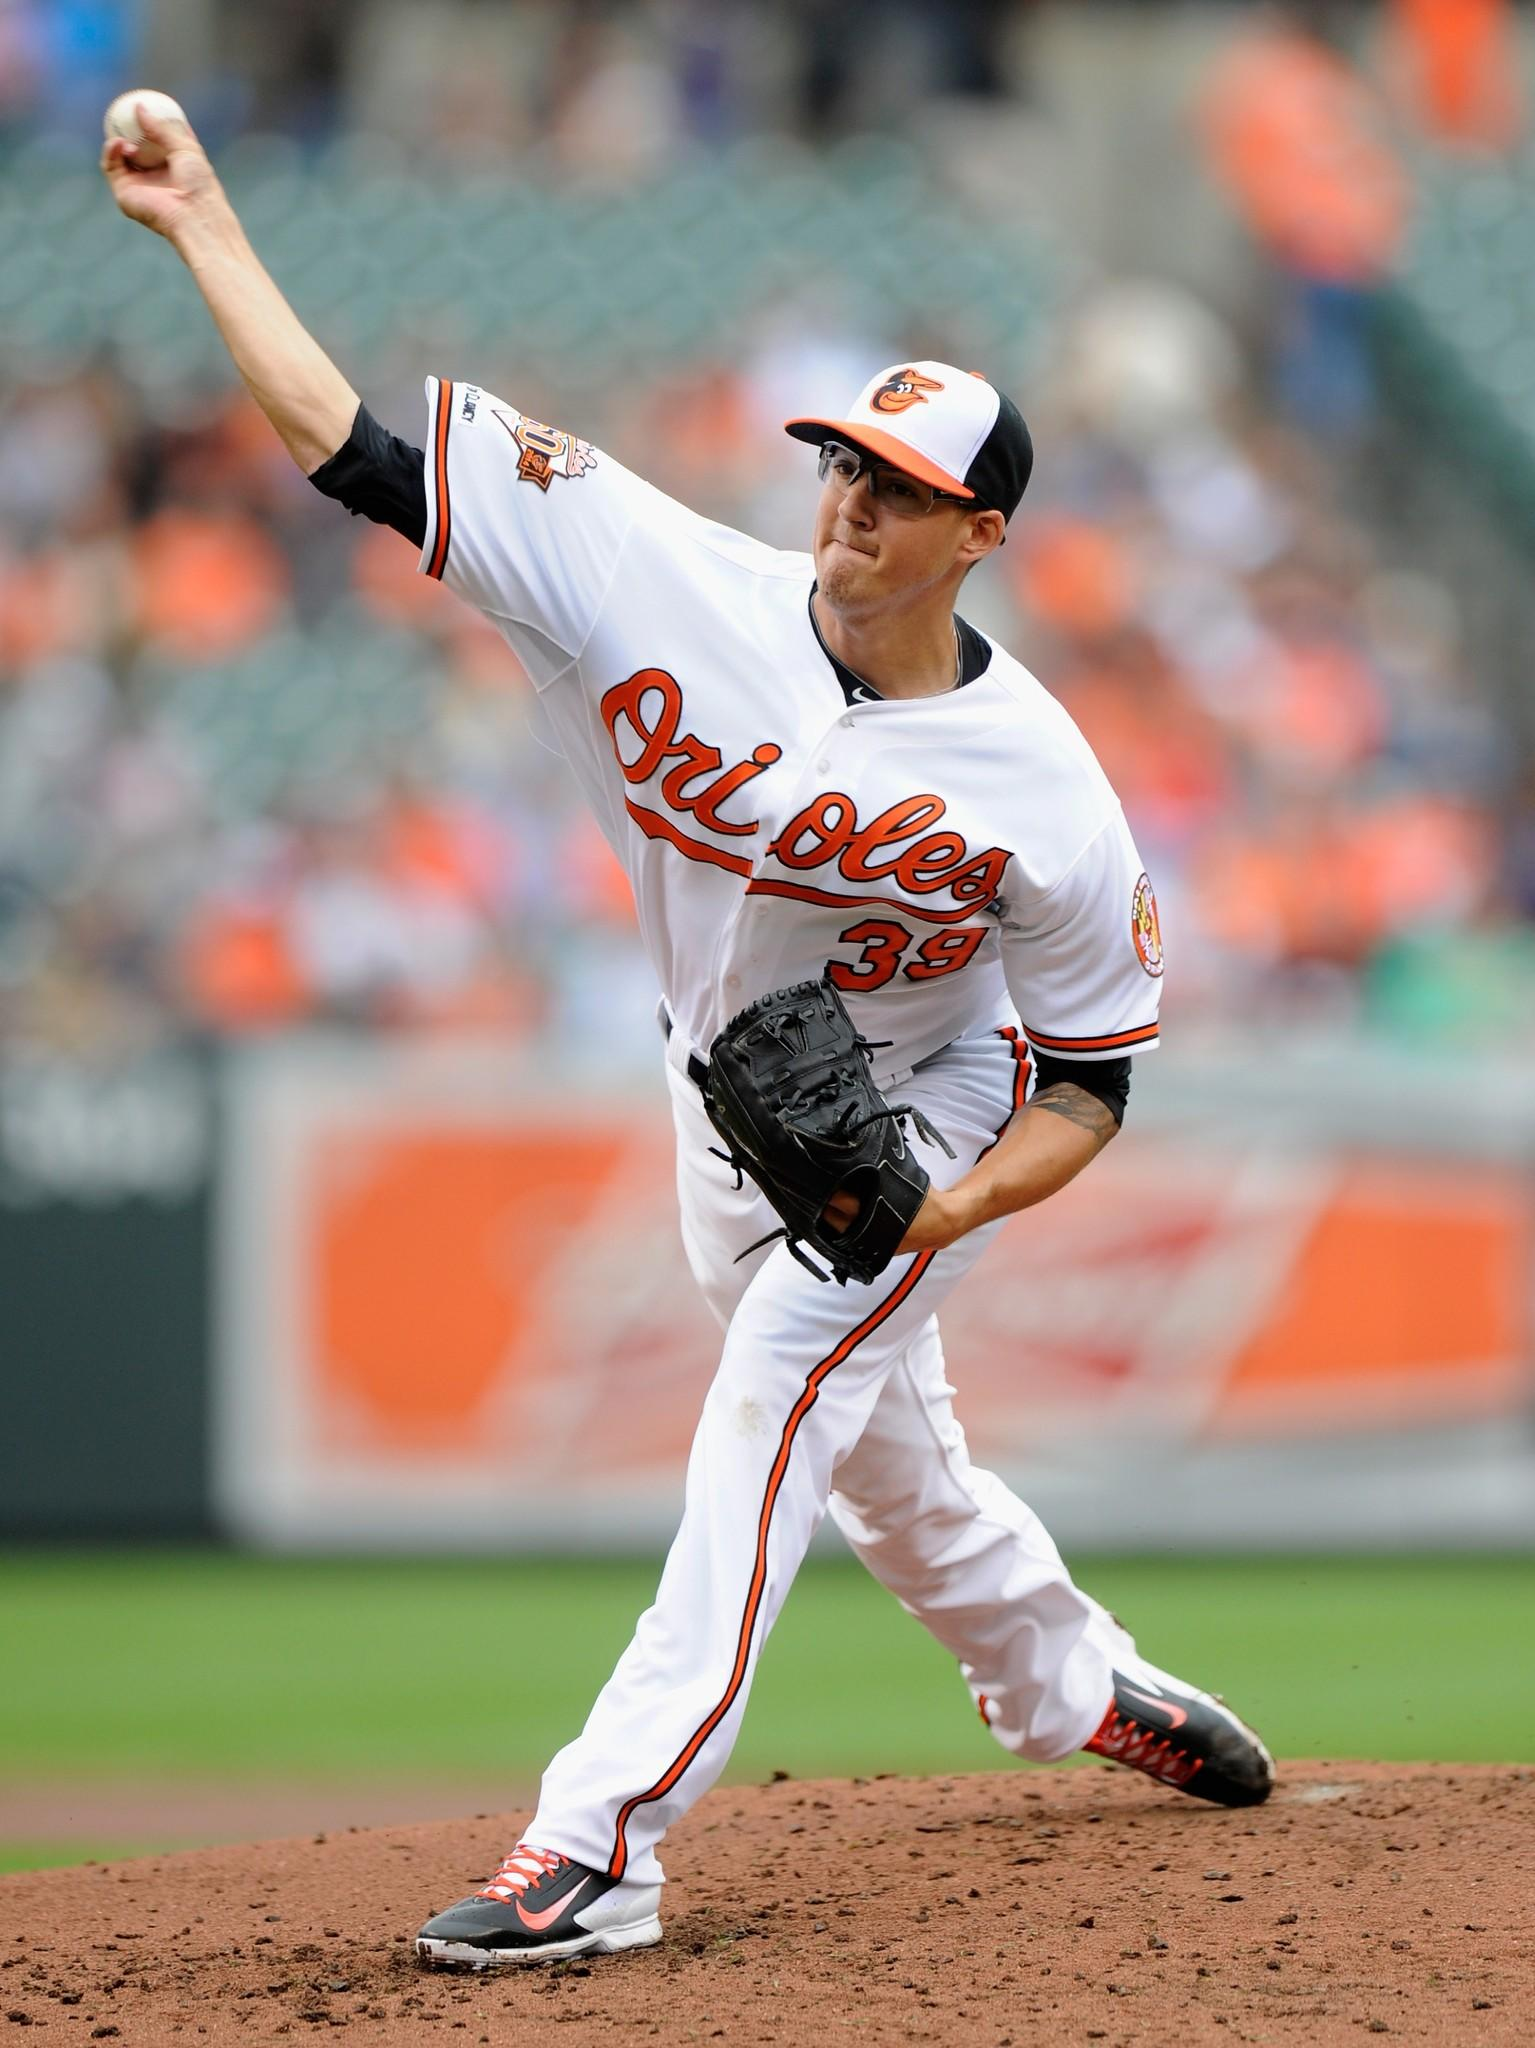 Kevin Gausman will start for the Orioles on Saturday night against the Oakland Athletics.